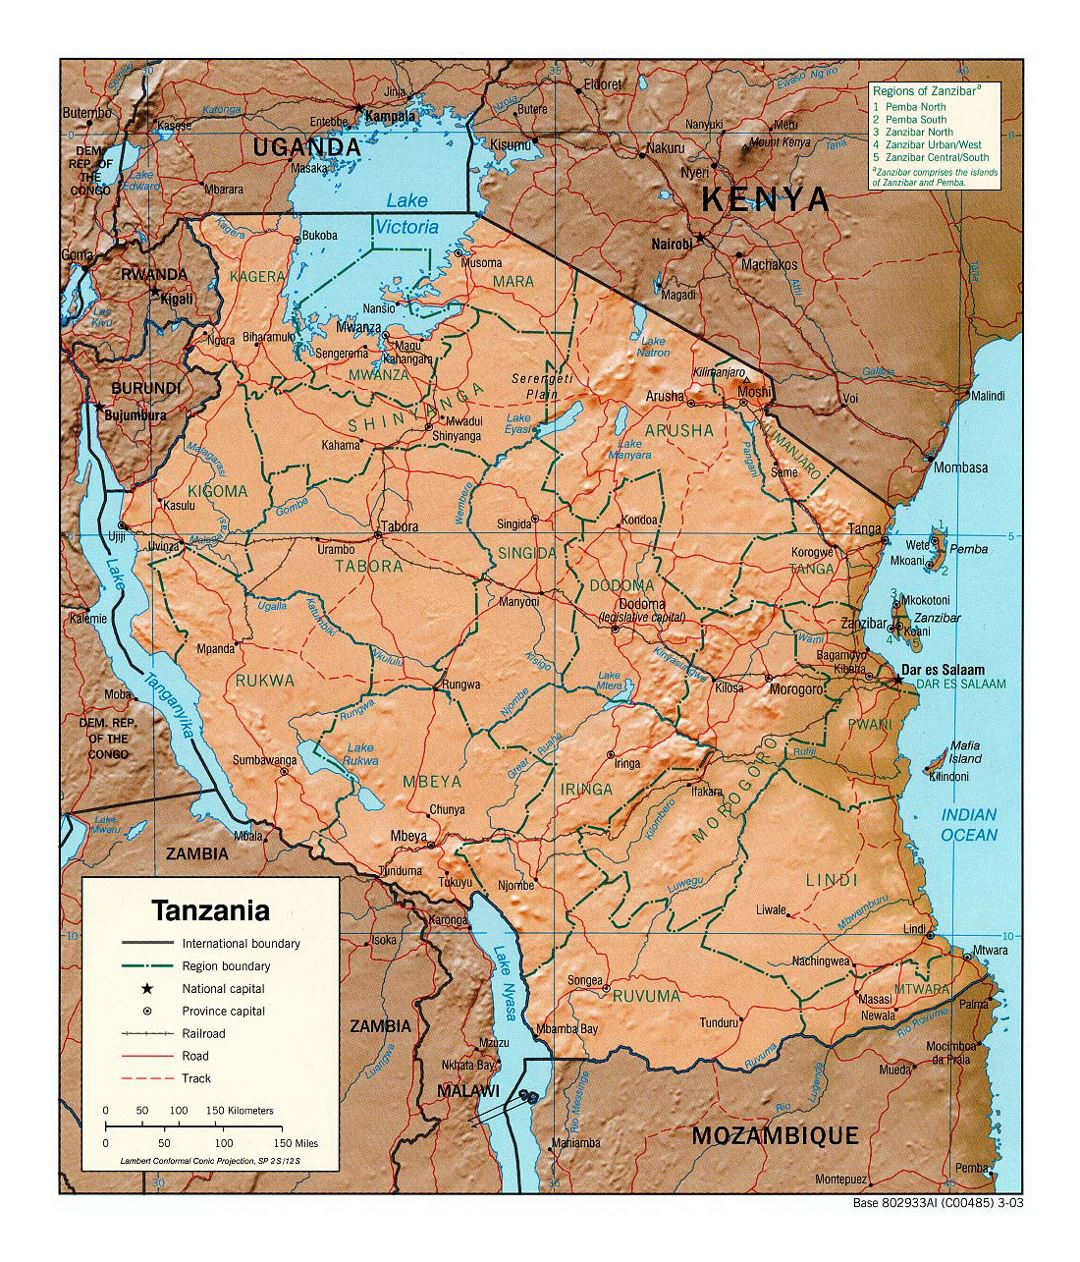 Detailed political and administrative map of Tanzania with relief, roads, railroads and major cities - 2003